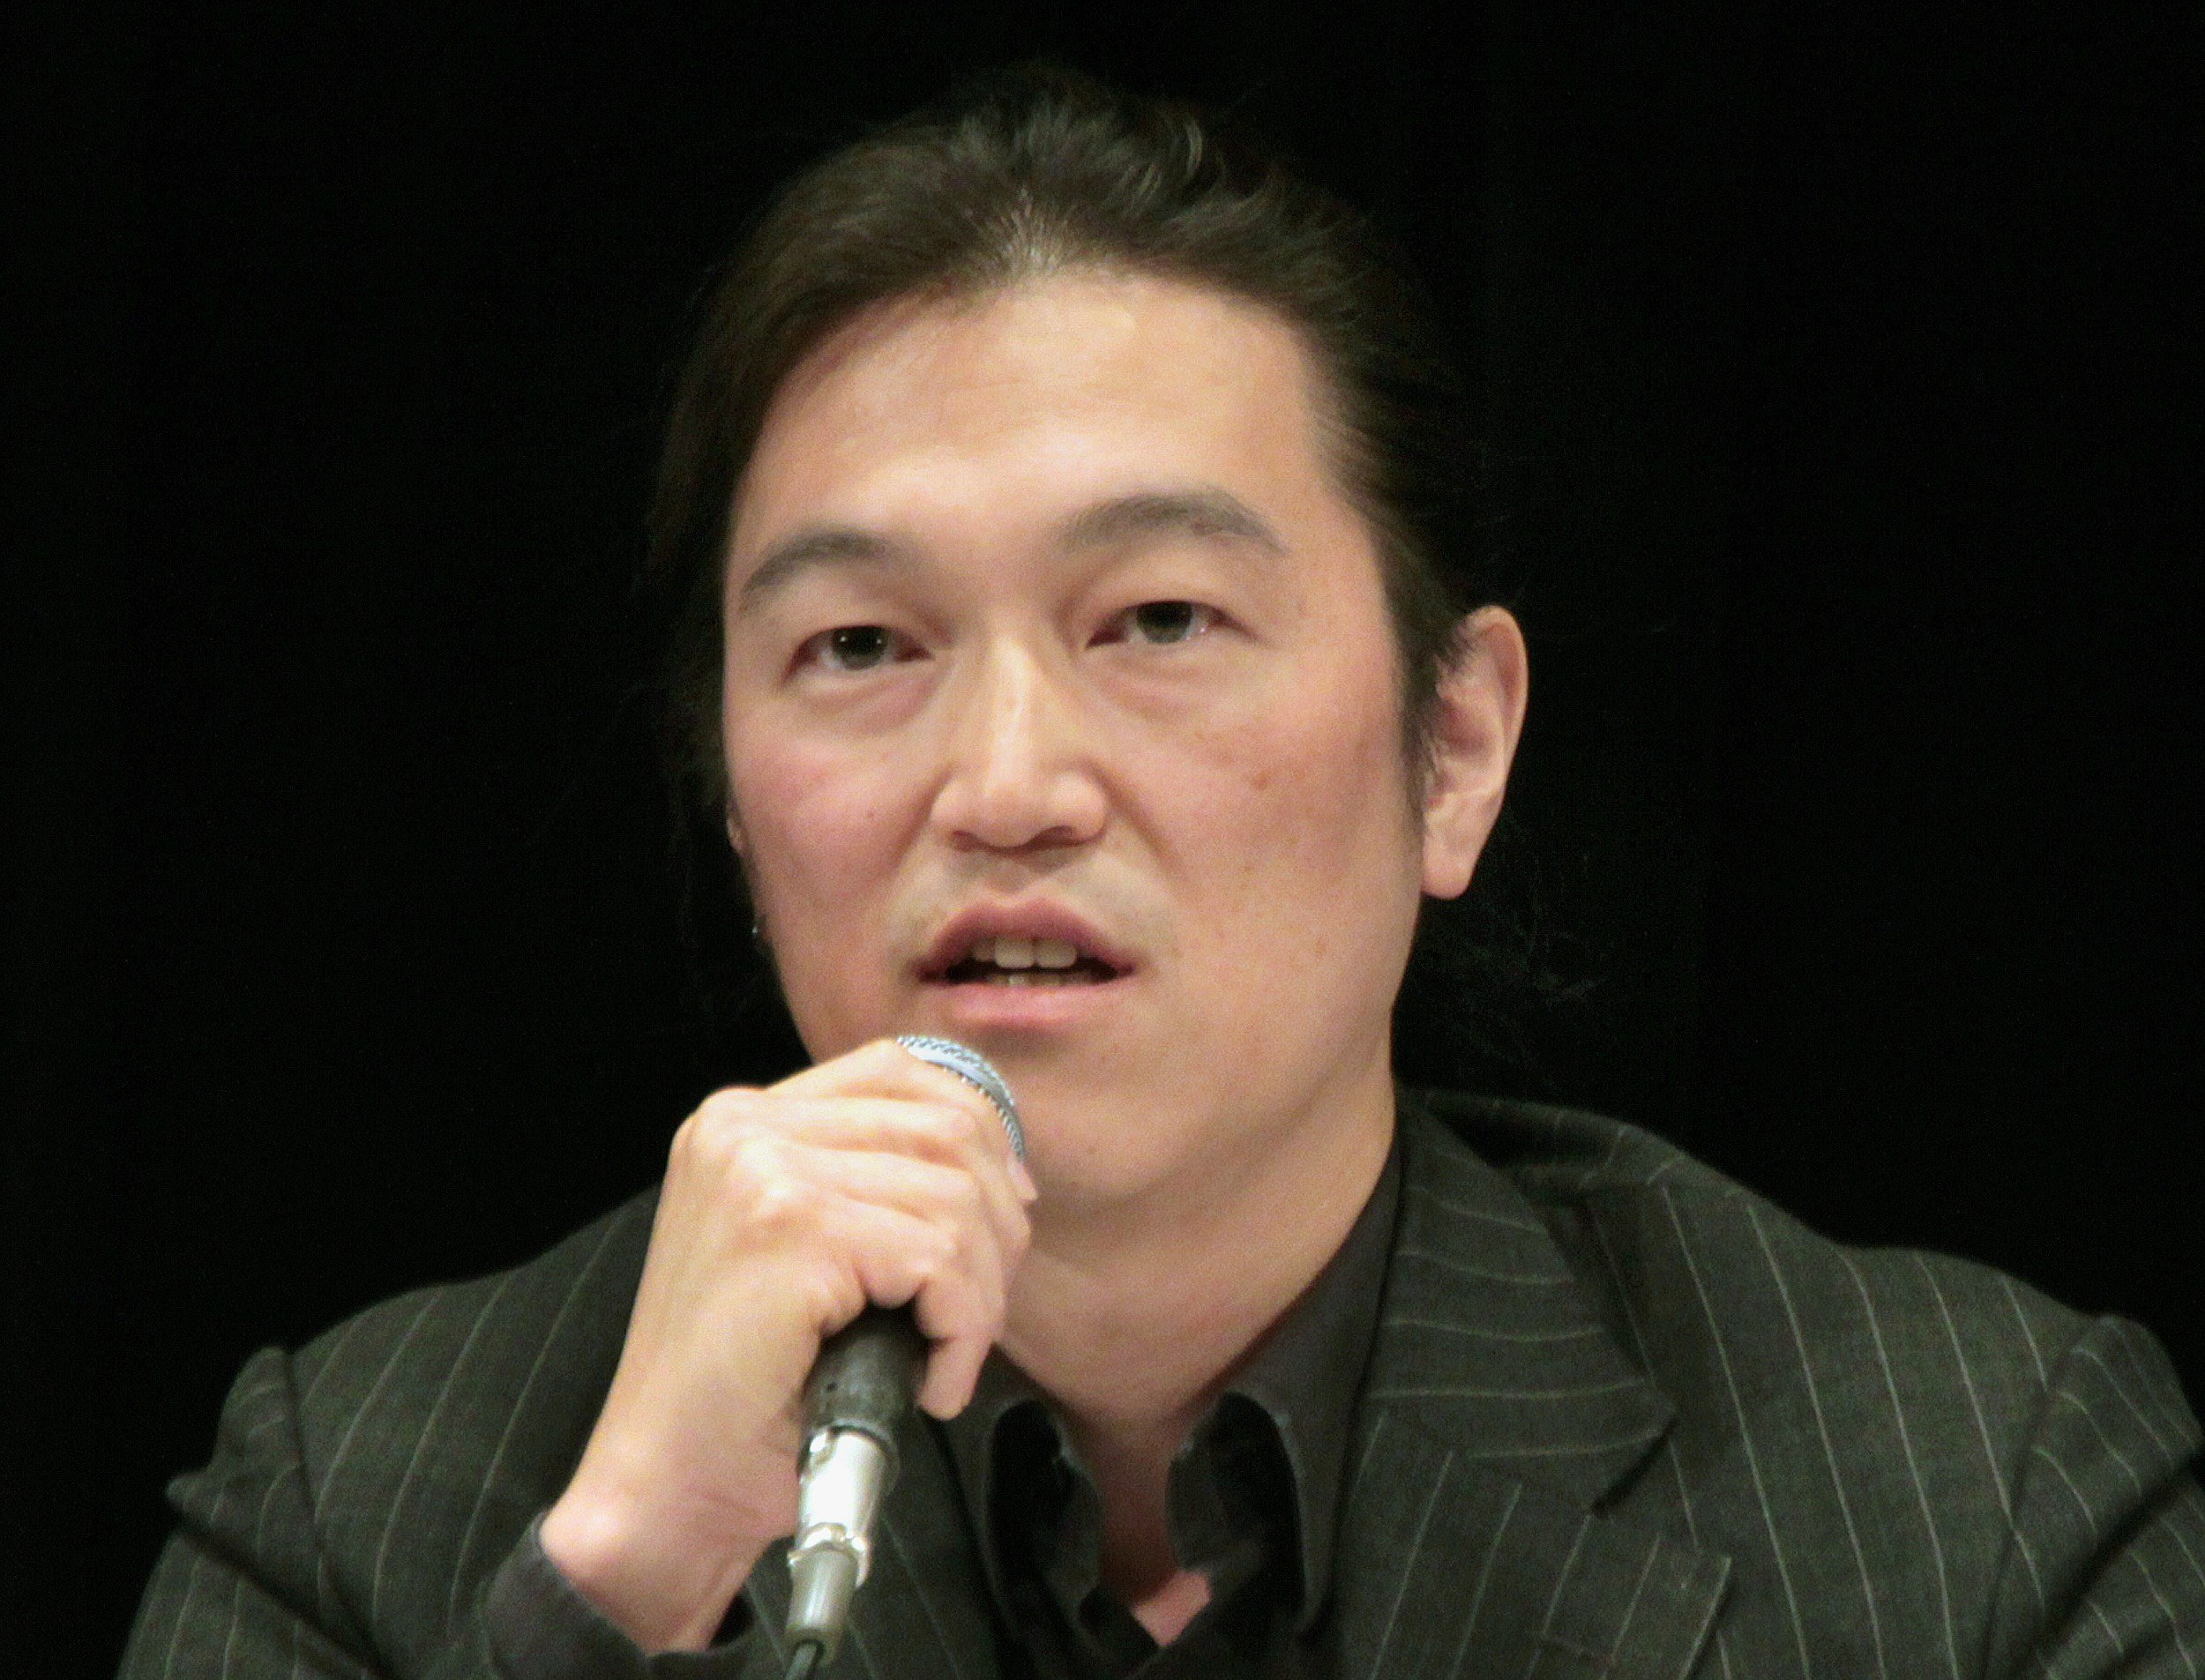 Japanese journalist Kenji Goto delivering a lecture during a symposium in Tokyo on Oct. 27, 2010.